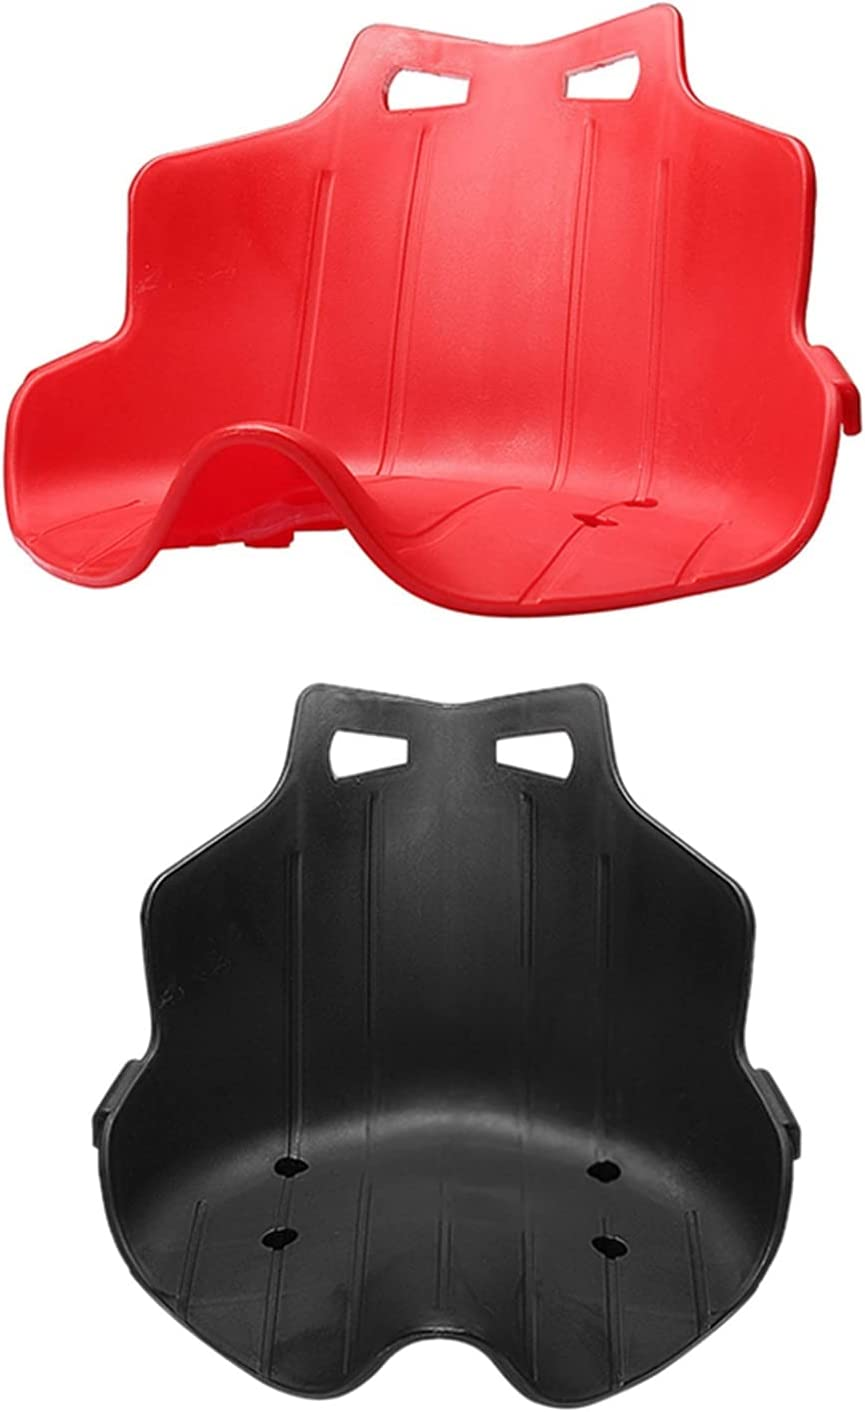 Sale CHENZHEN Sales results No. 1 Balanced Drifting Kart Seat for Hov Karting Cushion Fit